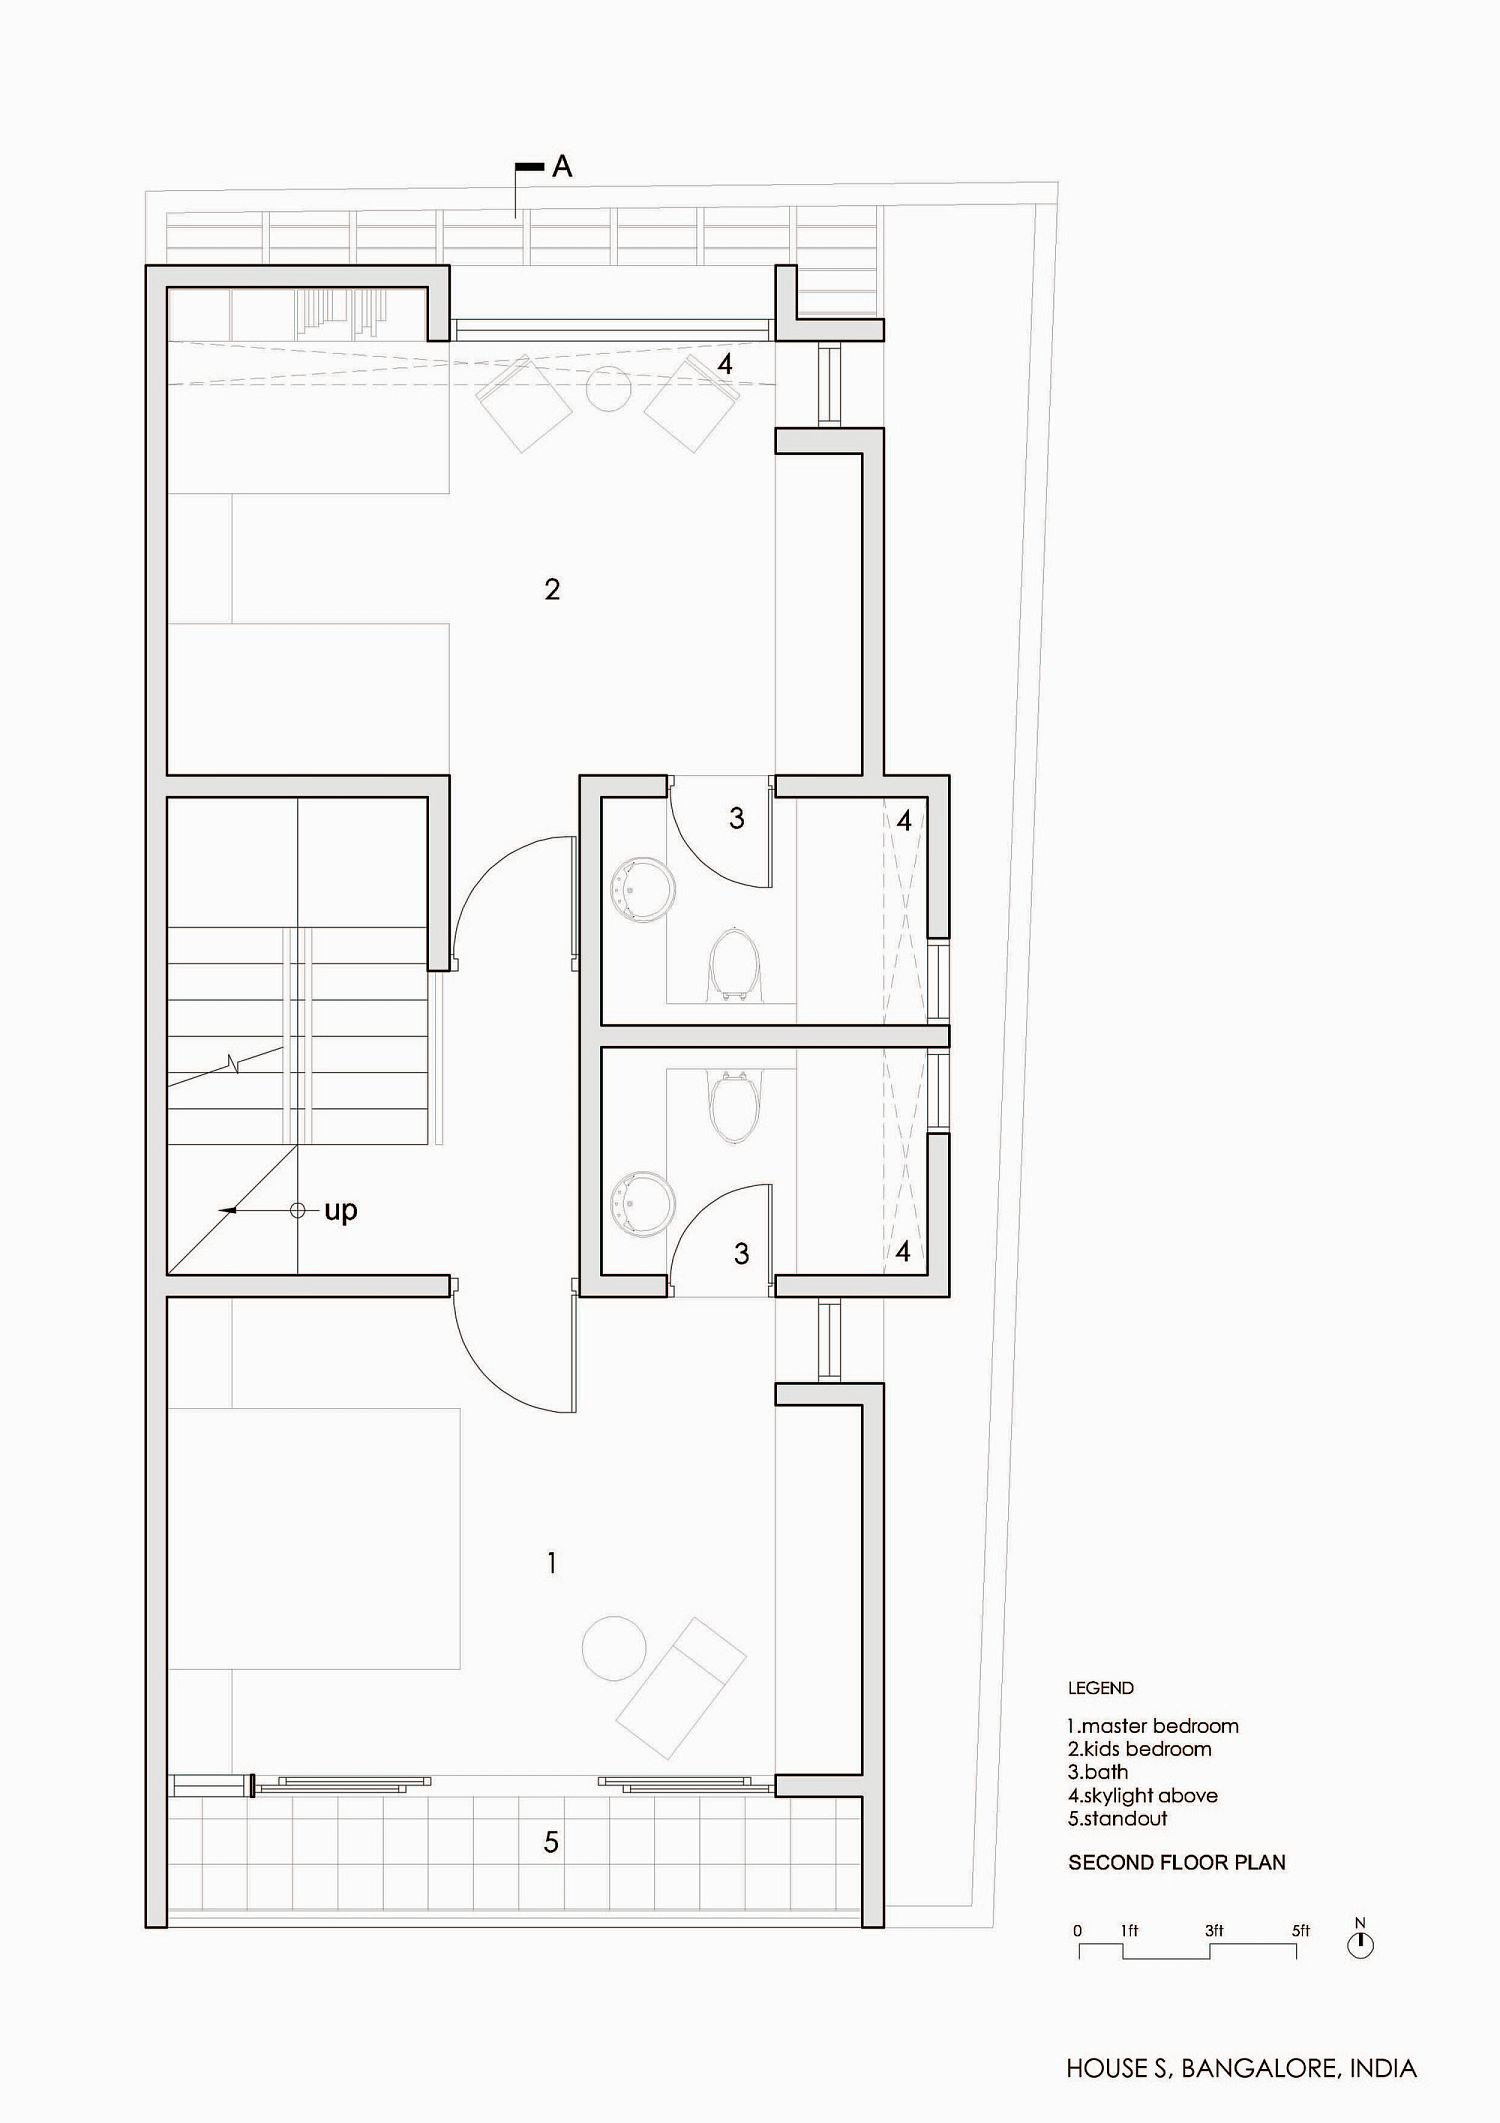 Bedroom level floor plan of House S